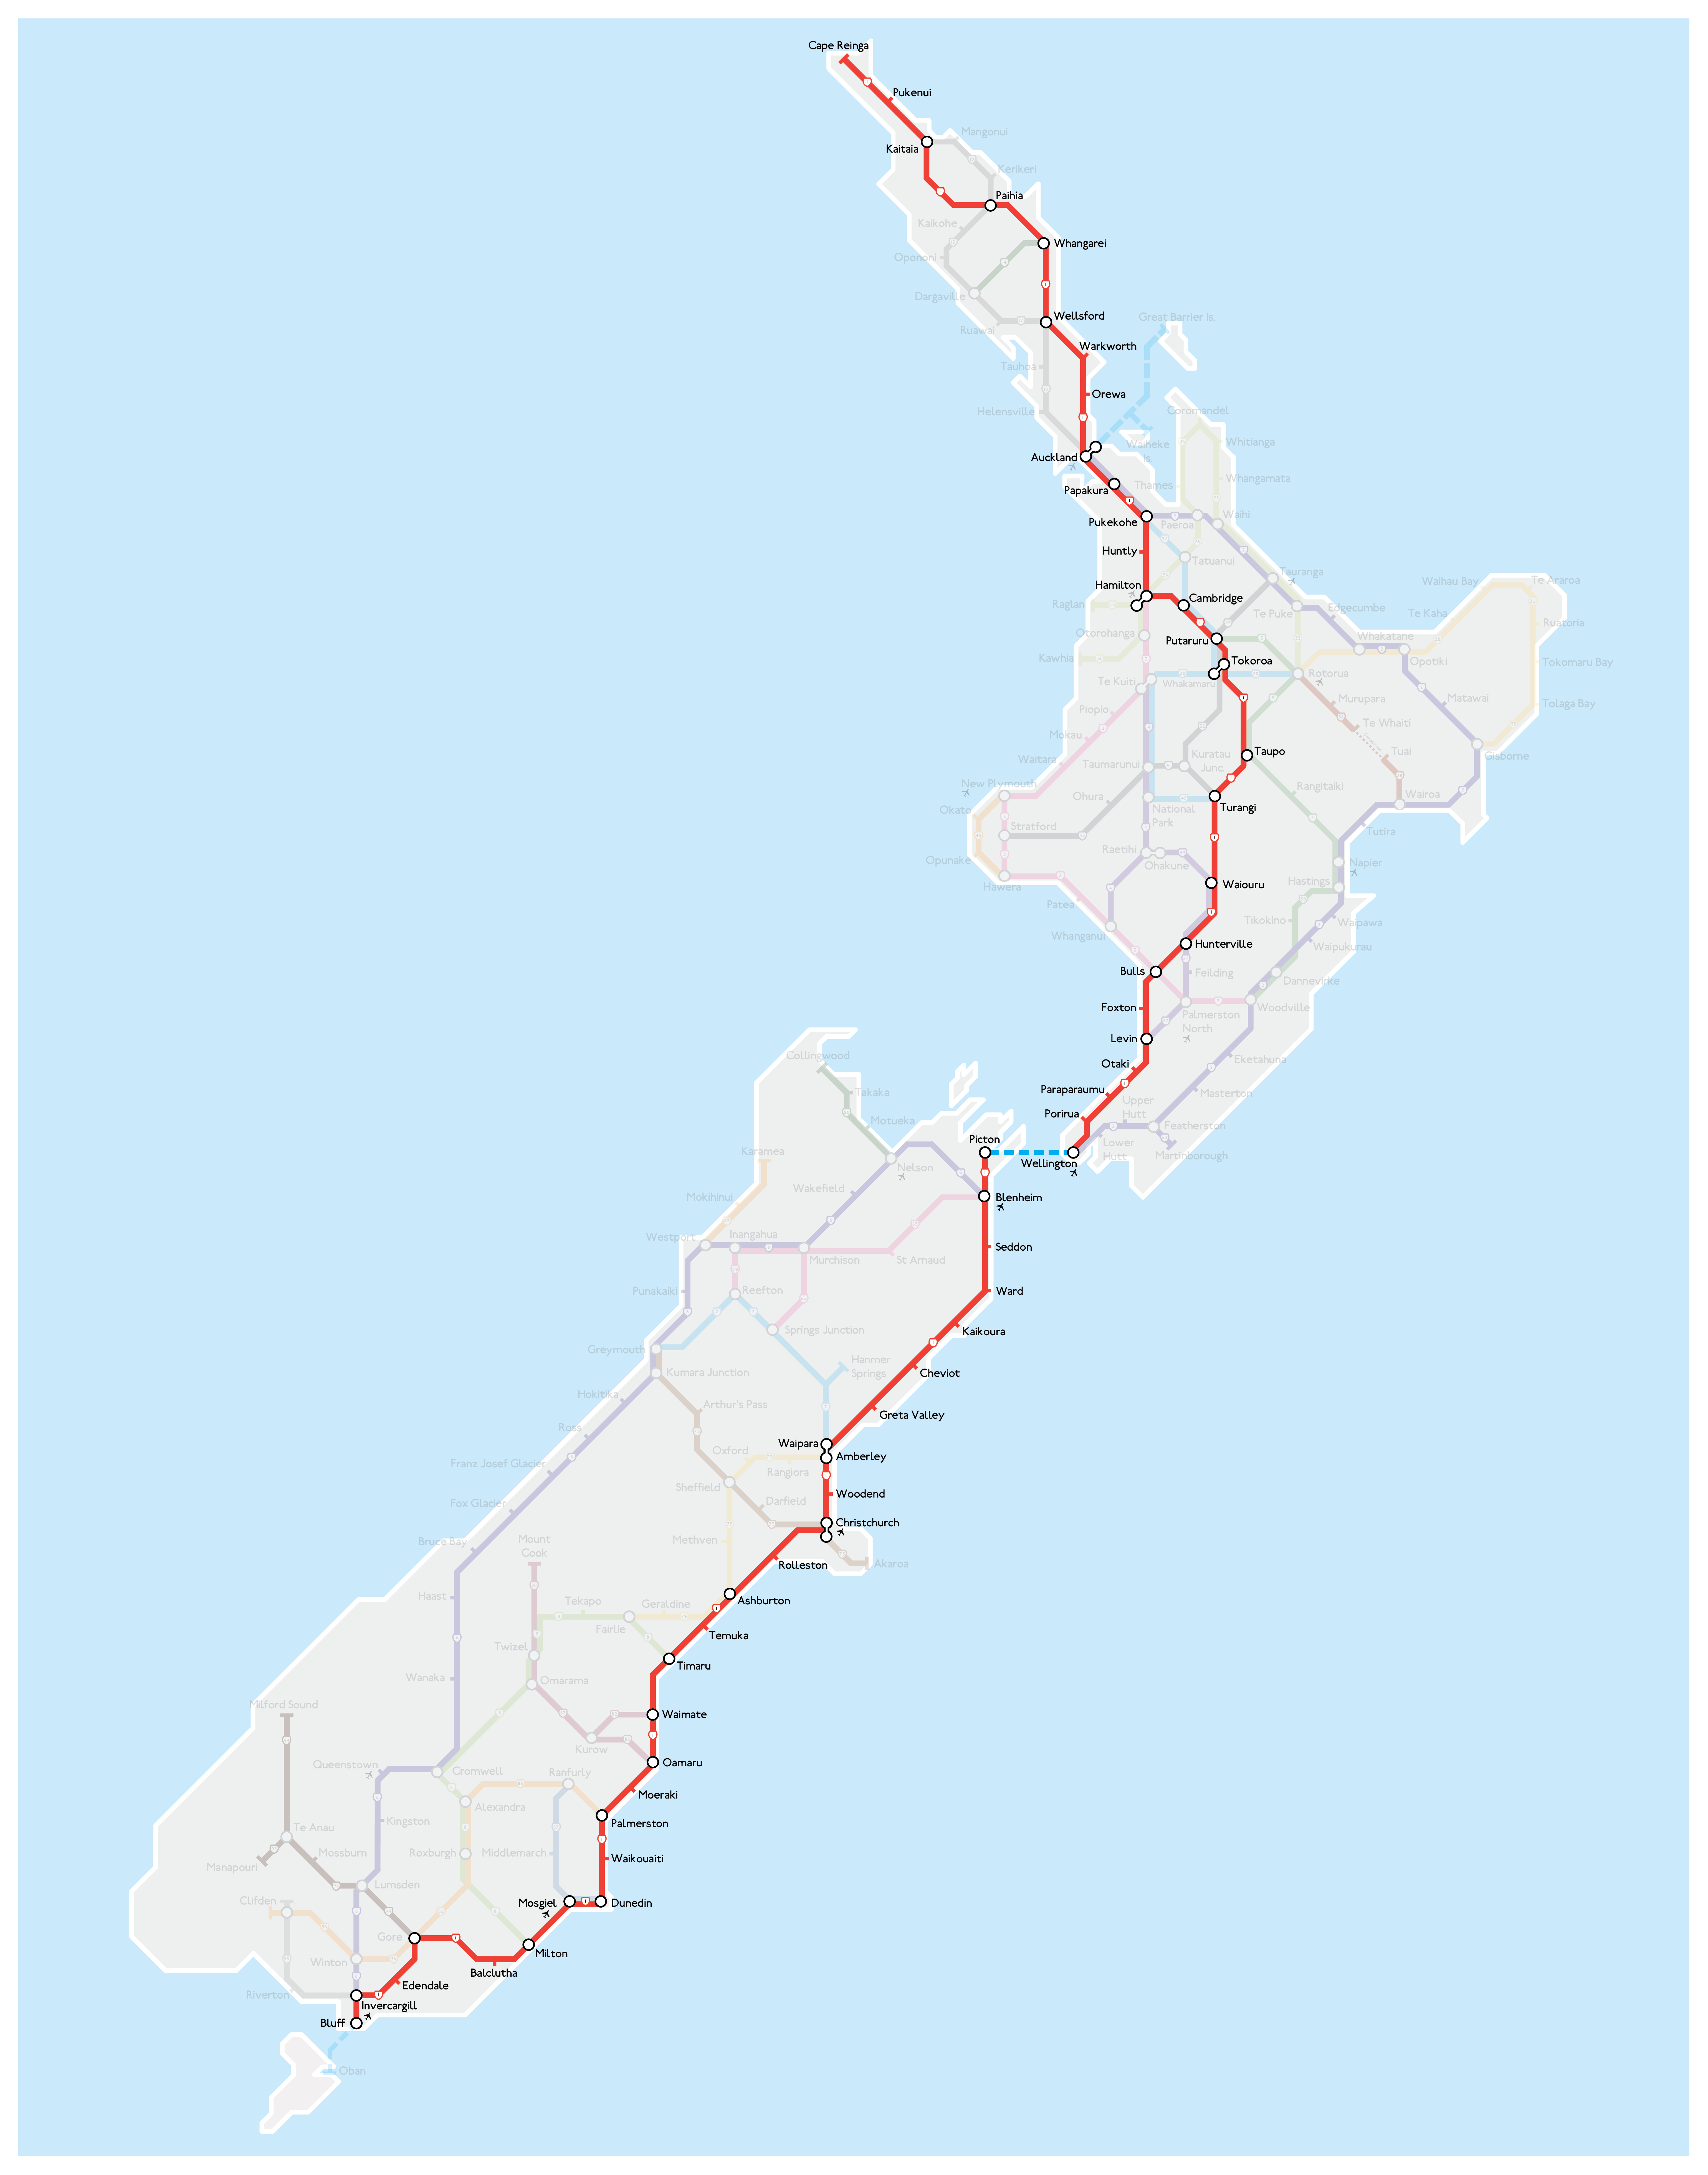 New Zealand Road Map.The Great New Zealand Road Trip